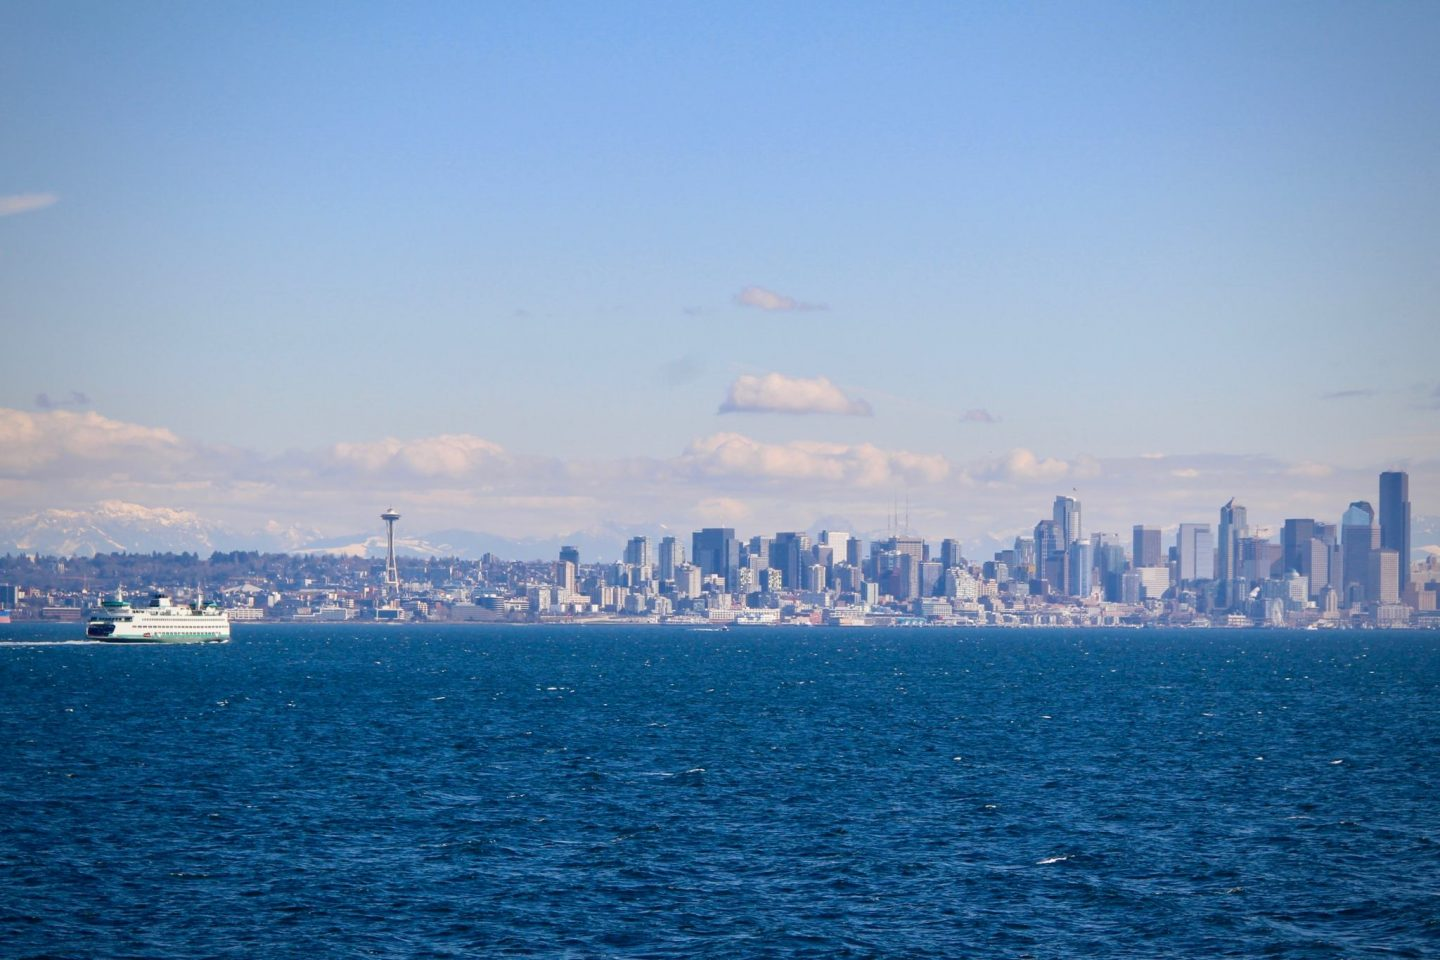 downtown Seattle skyline view, Washington - The Spectacular Adventurer